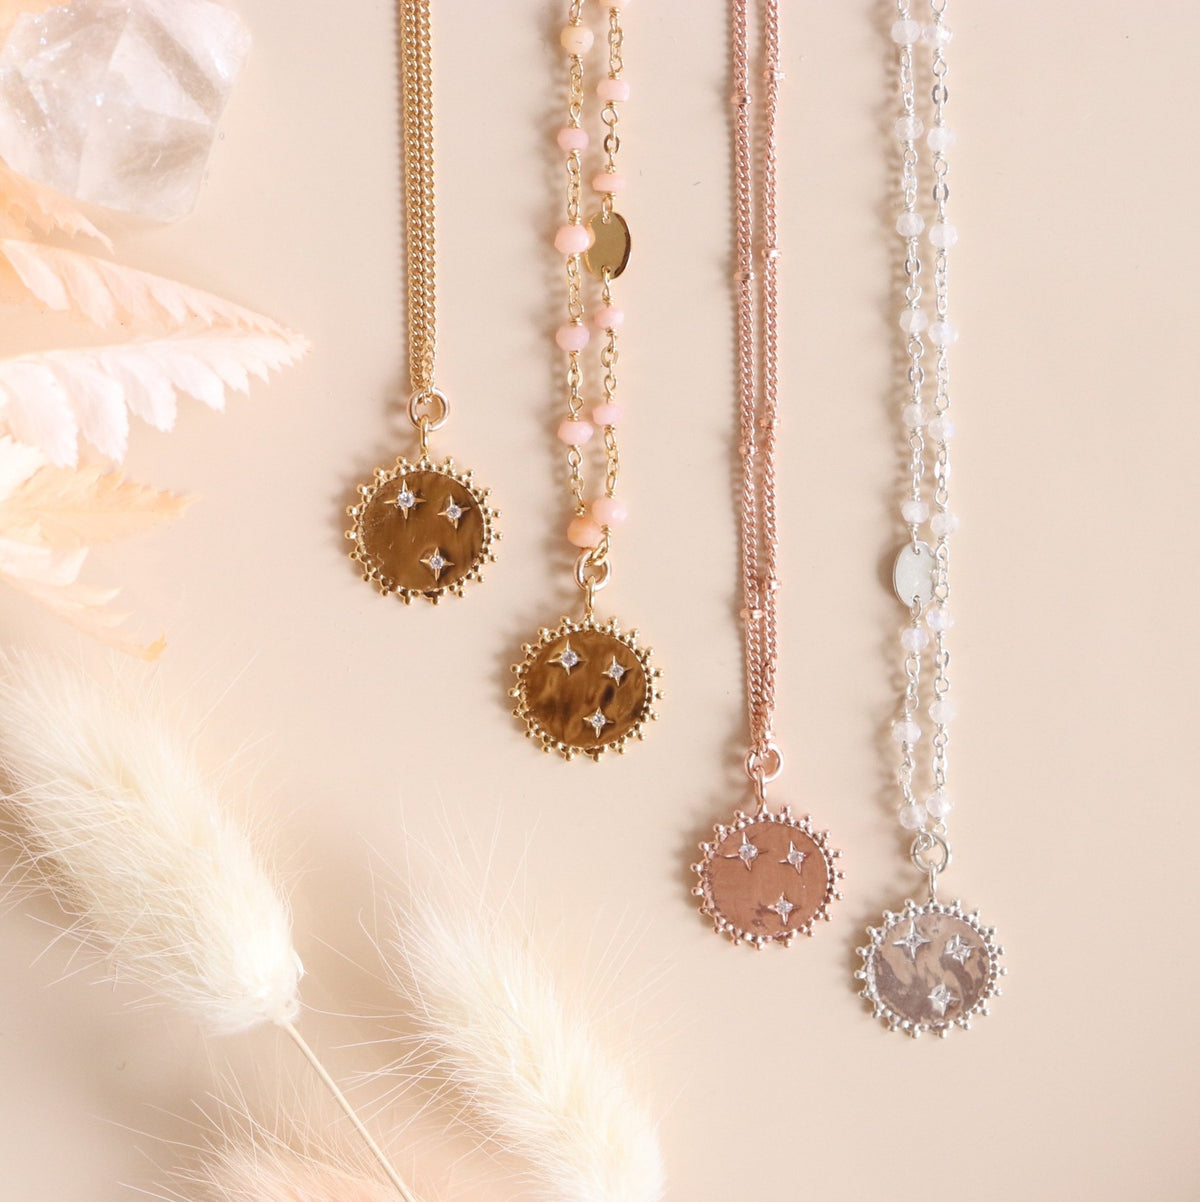 BELIEVE SOLEIL STAR ICON - CUBIC ZIRCONIA & GOLD - SO PRETTY CARA COTTER